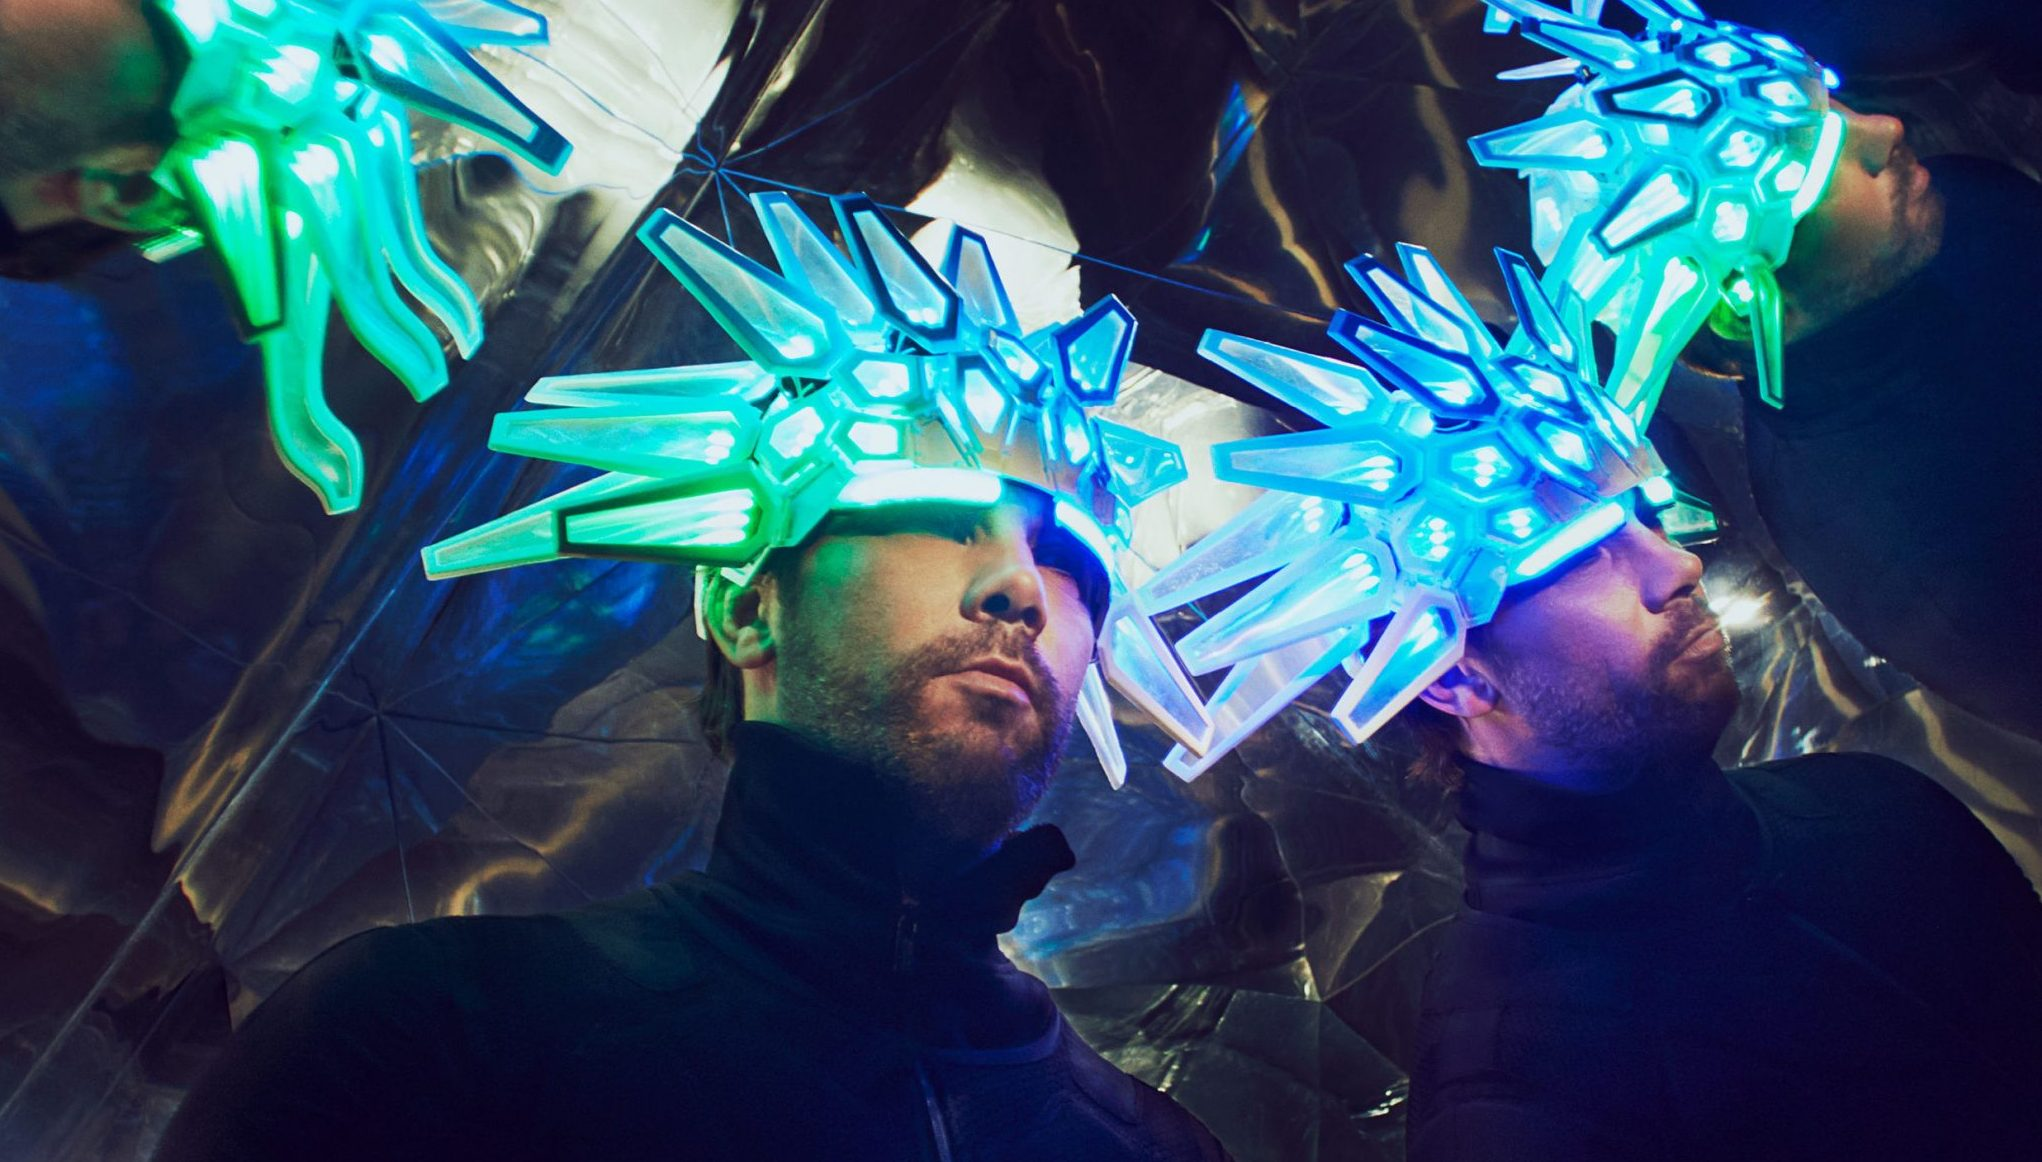 Jamiroquai - Automaton, foto: Virgin EMI Records